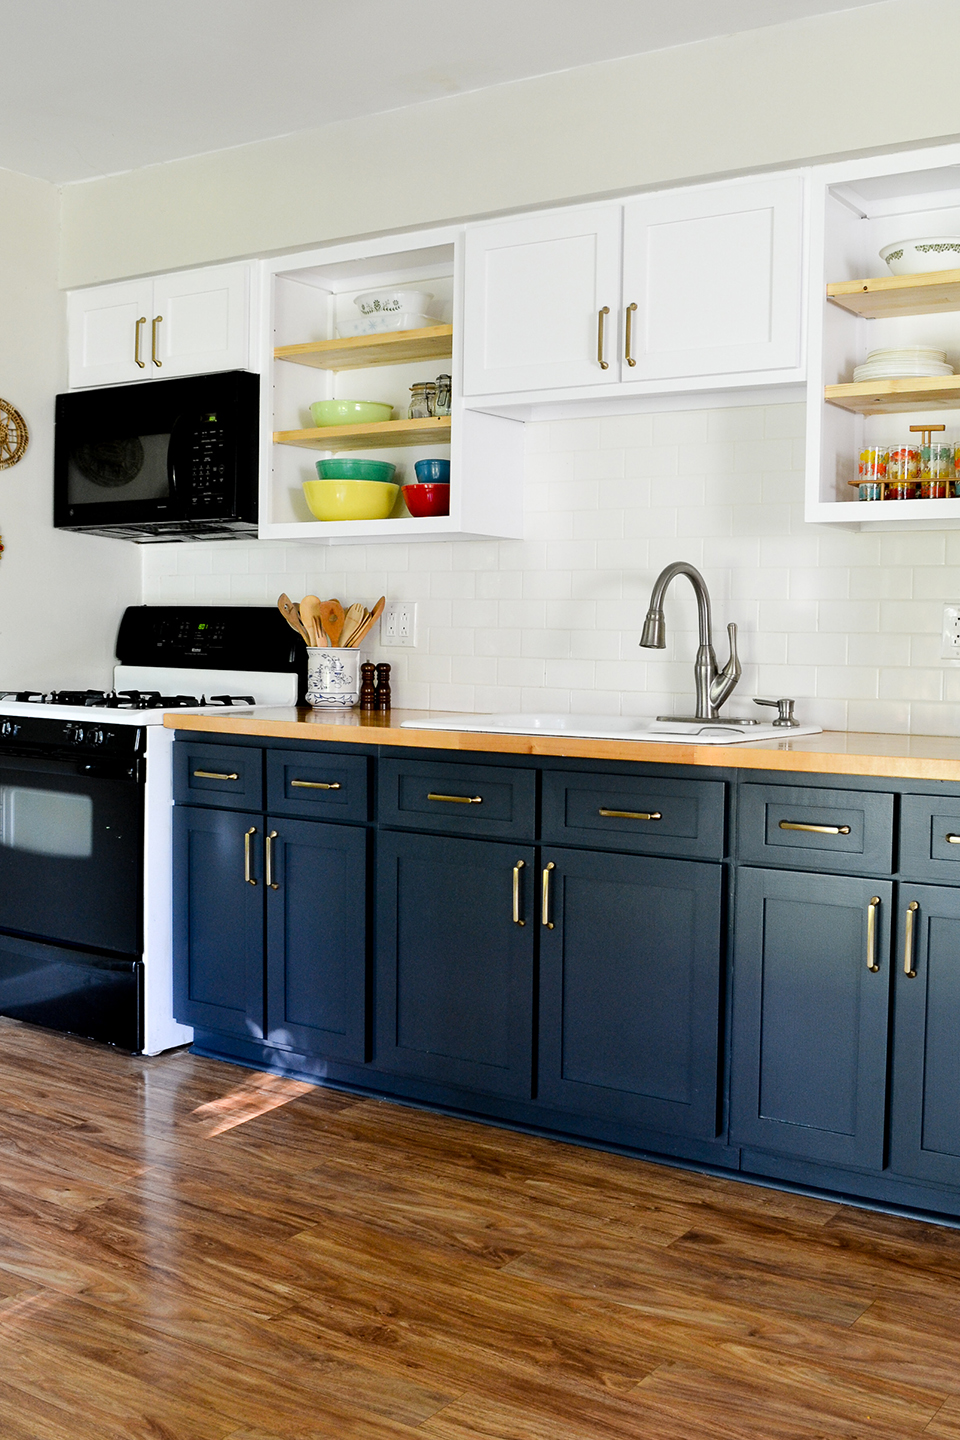 Blue and white cabinet doors in kitchen with open shelves